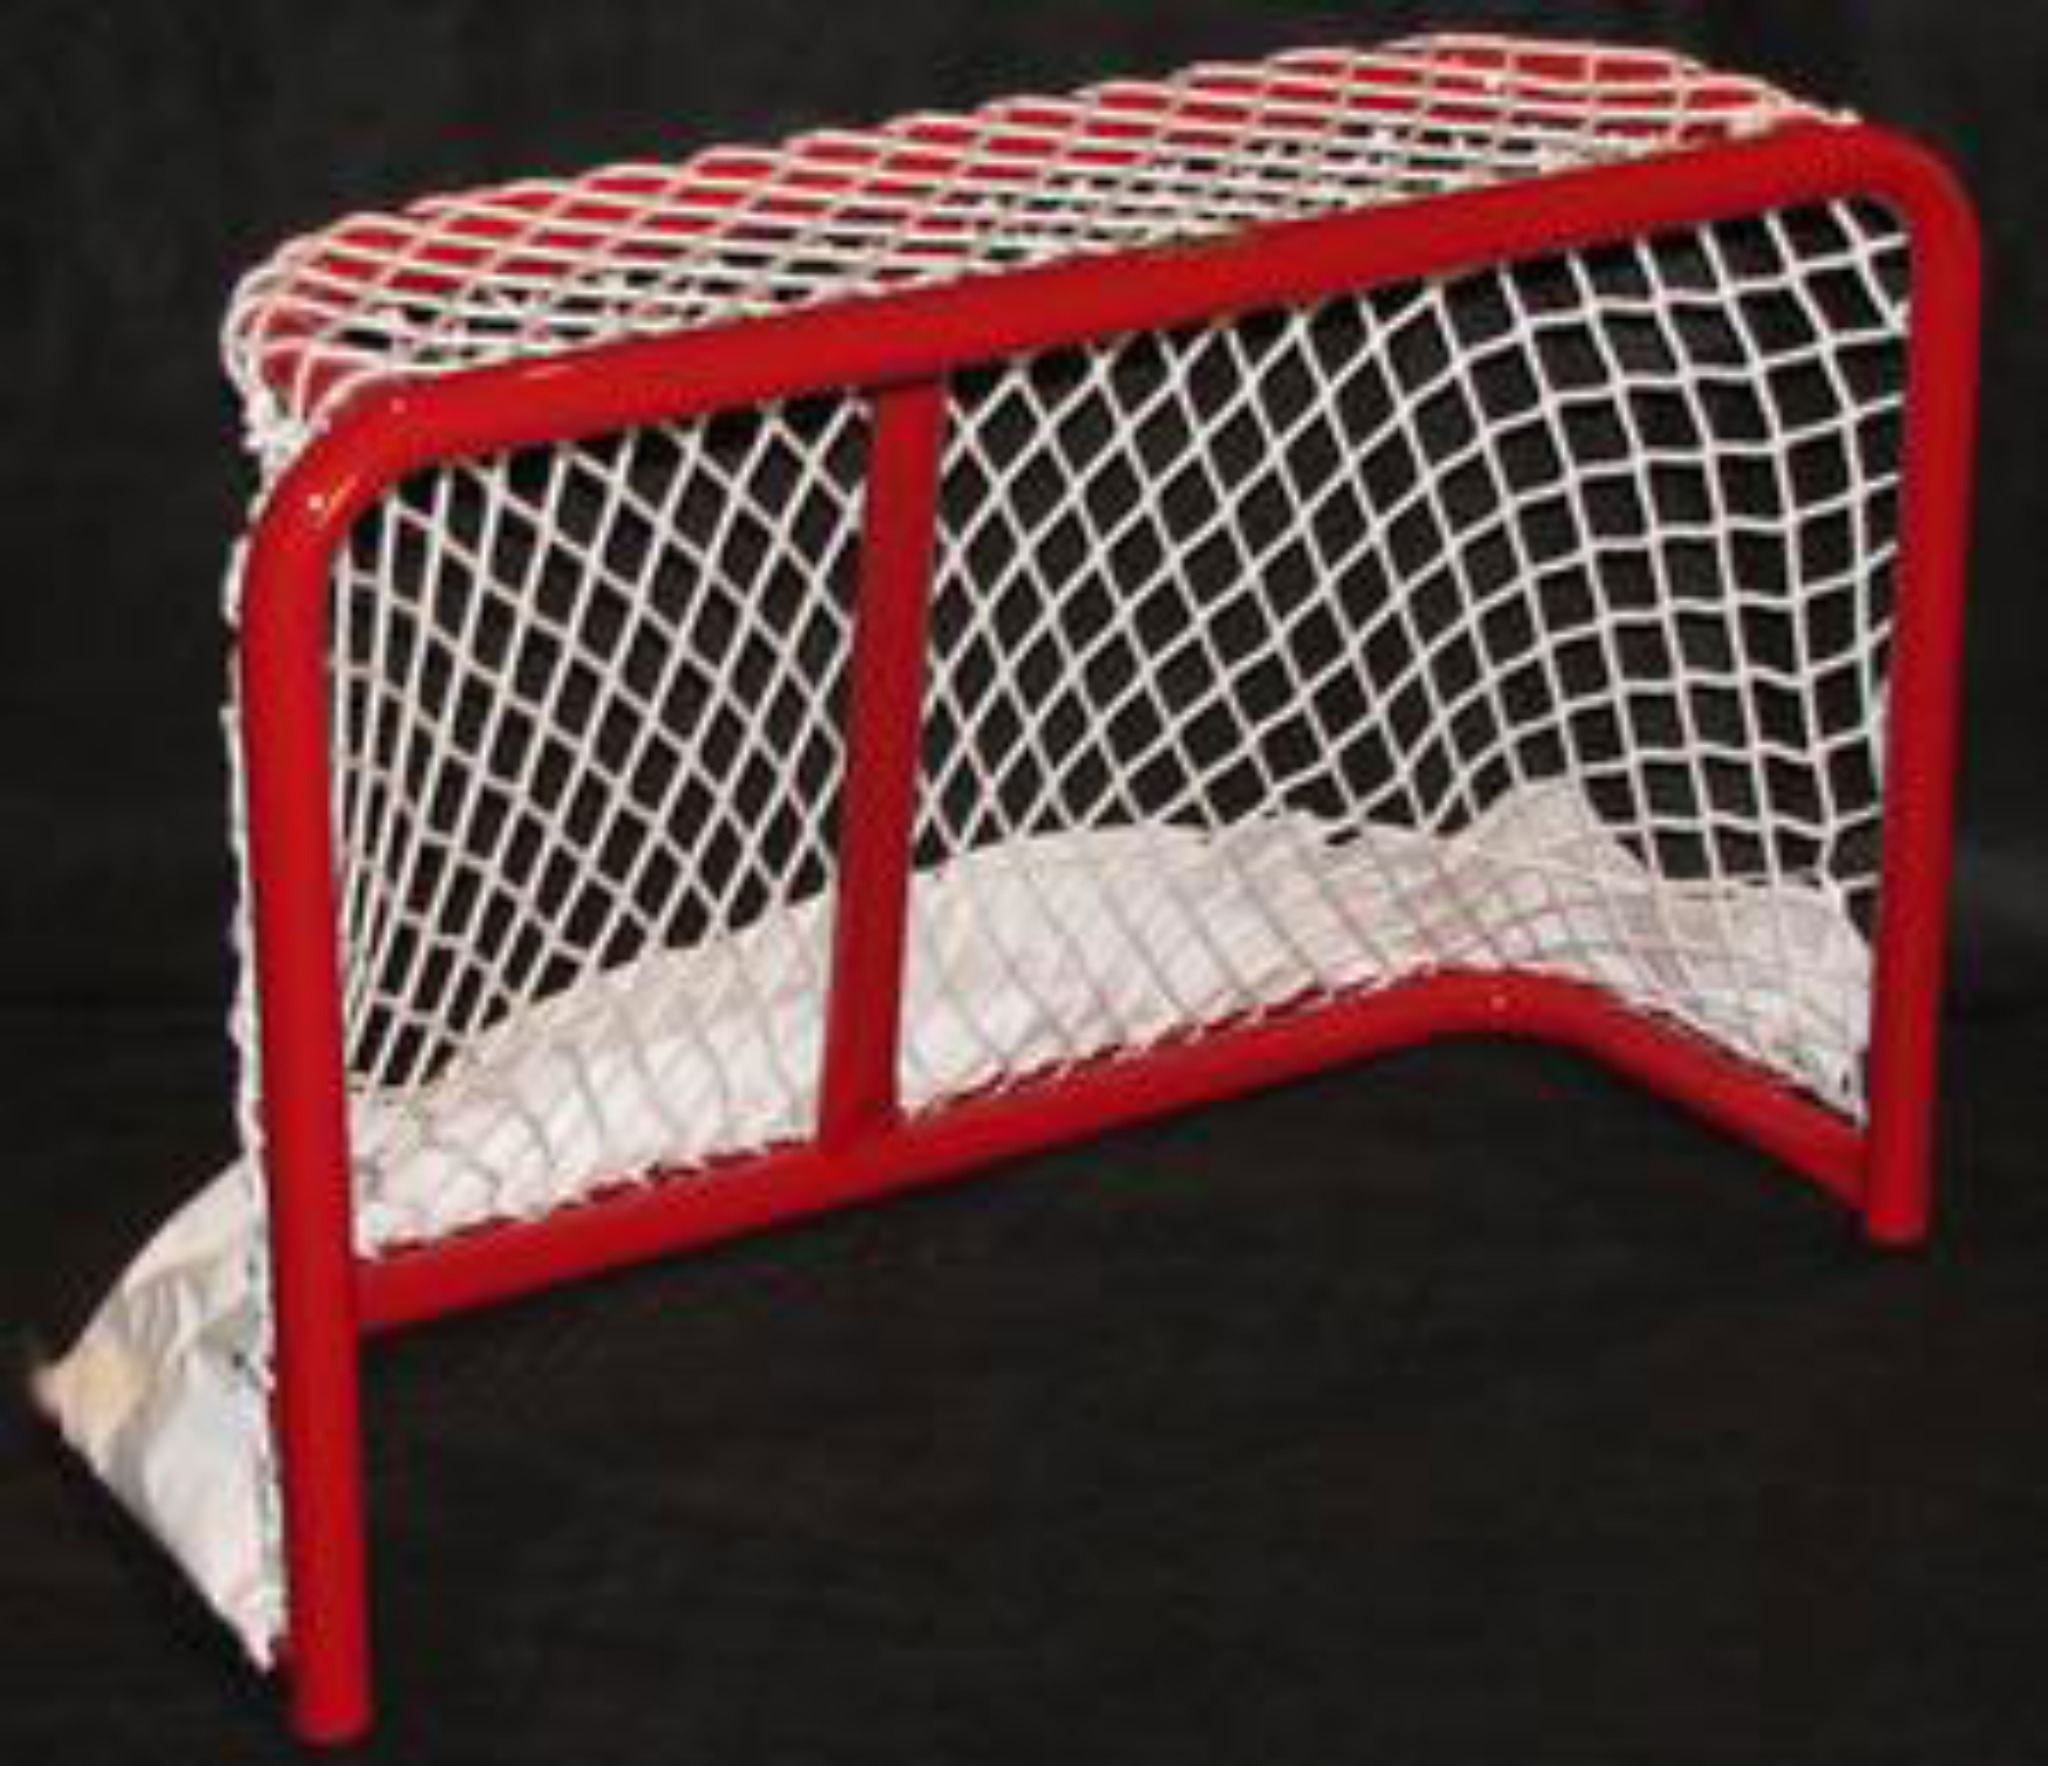 "3' x 2' Steel Hockey Goal Frame; 20"" Rectangular Base Depth; Welded Lacing Bar for Attaching Net; Red Powder-Coated Finish; Age 6U Players, No Goalie."